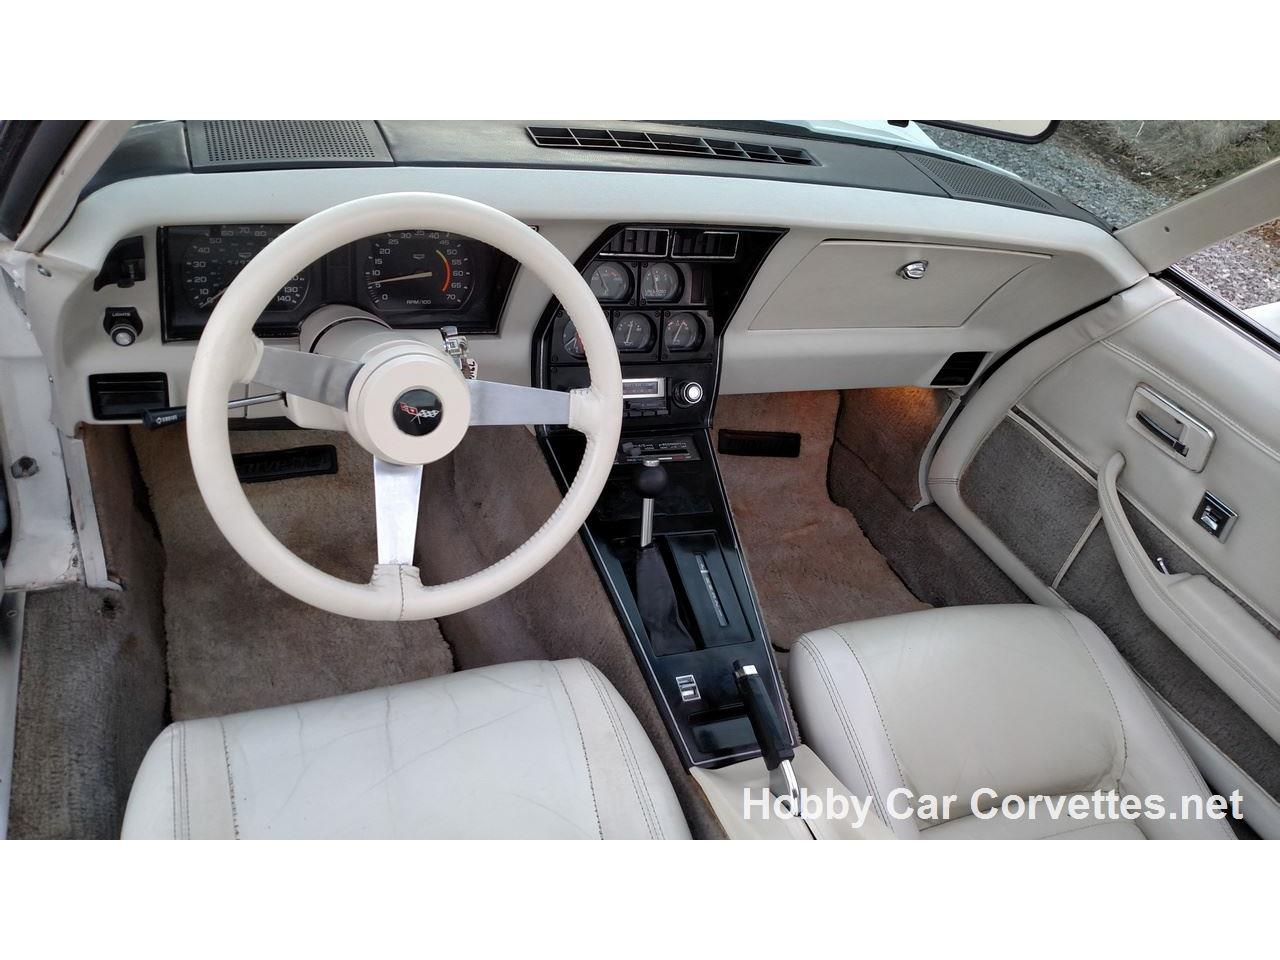 Large Picture of '79 Chevrolet Corvette located in Pennsylvania - $14,999.00 Offered by Hobby Car Corvettes - KMMI